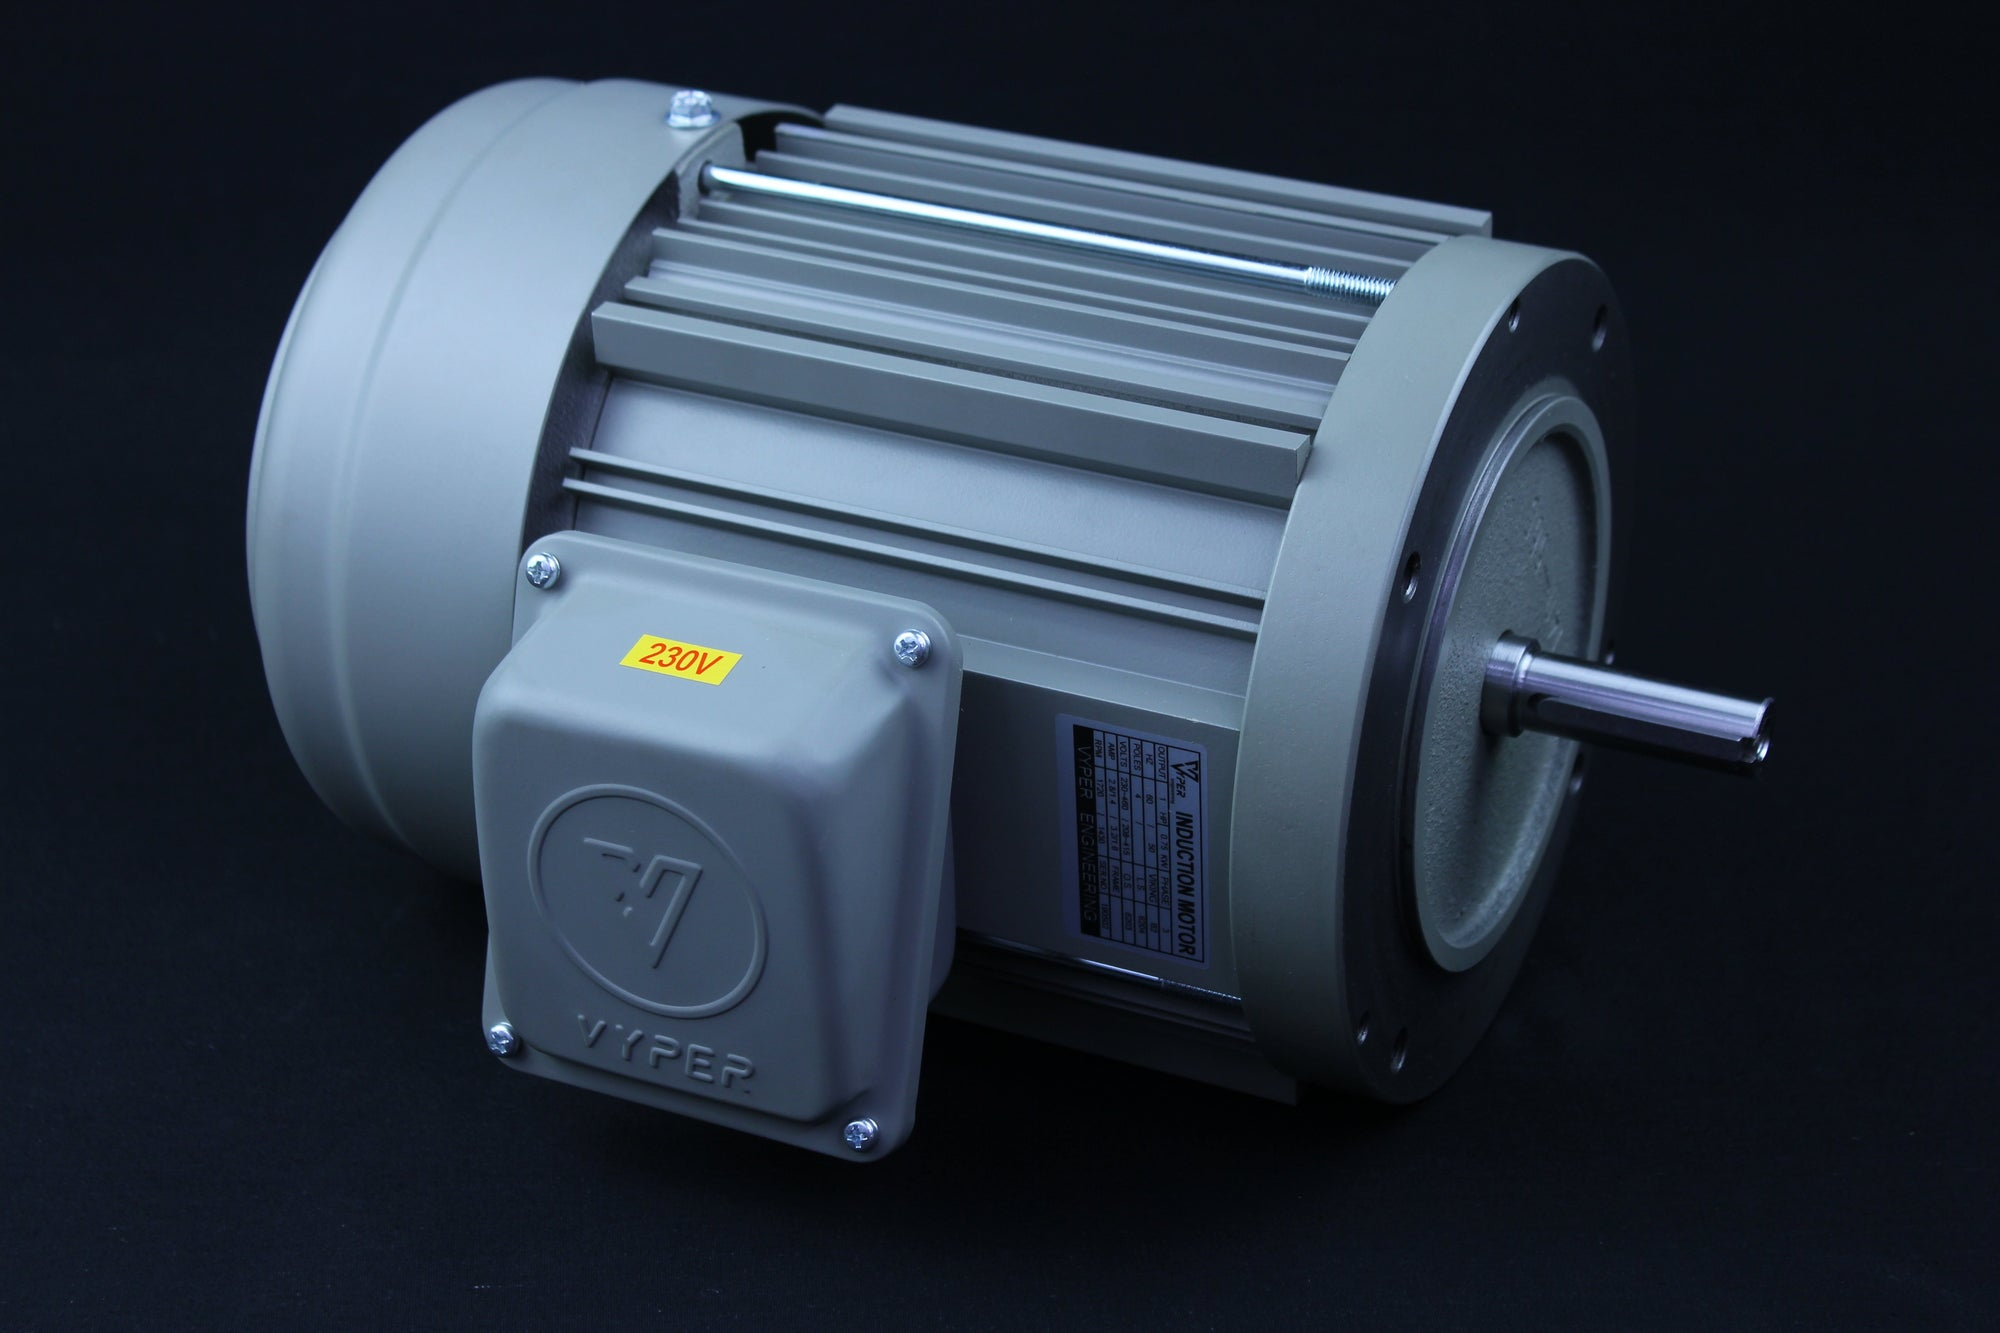 Three Phase - 1HP - 208-230/460V - 3000/3600RPM - 50/60HZ - 80 - C Face - IE1